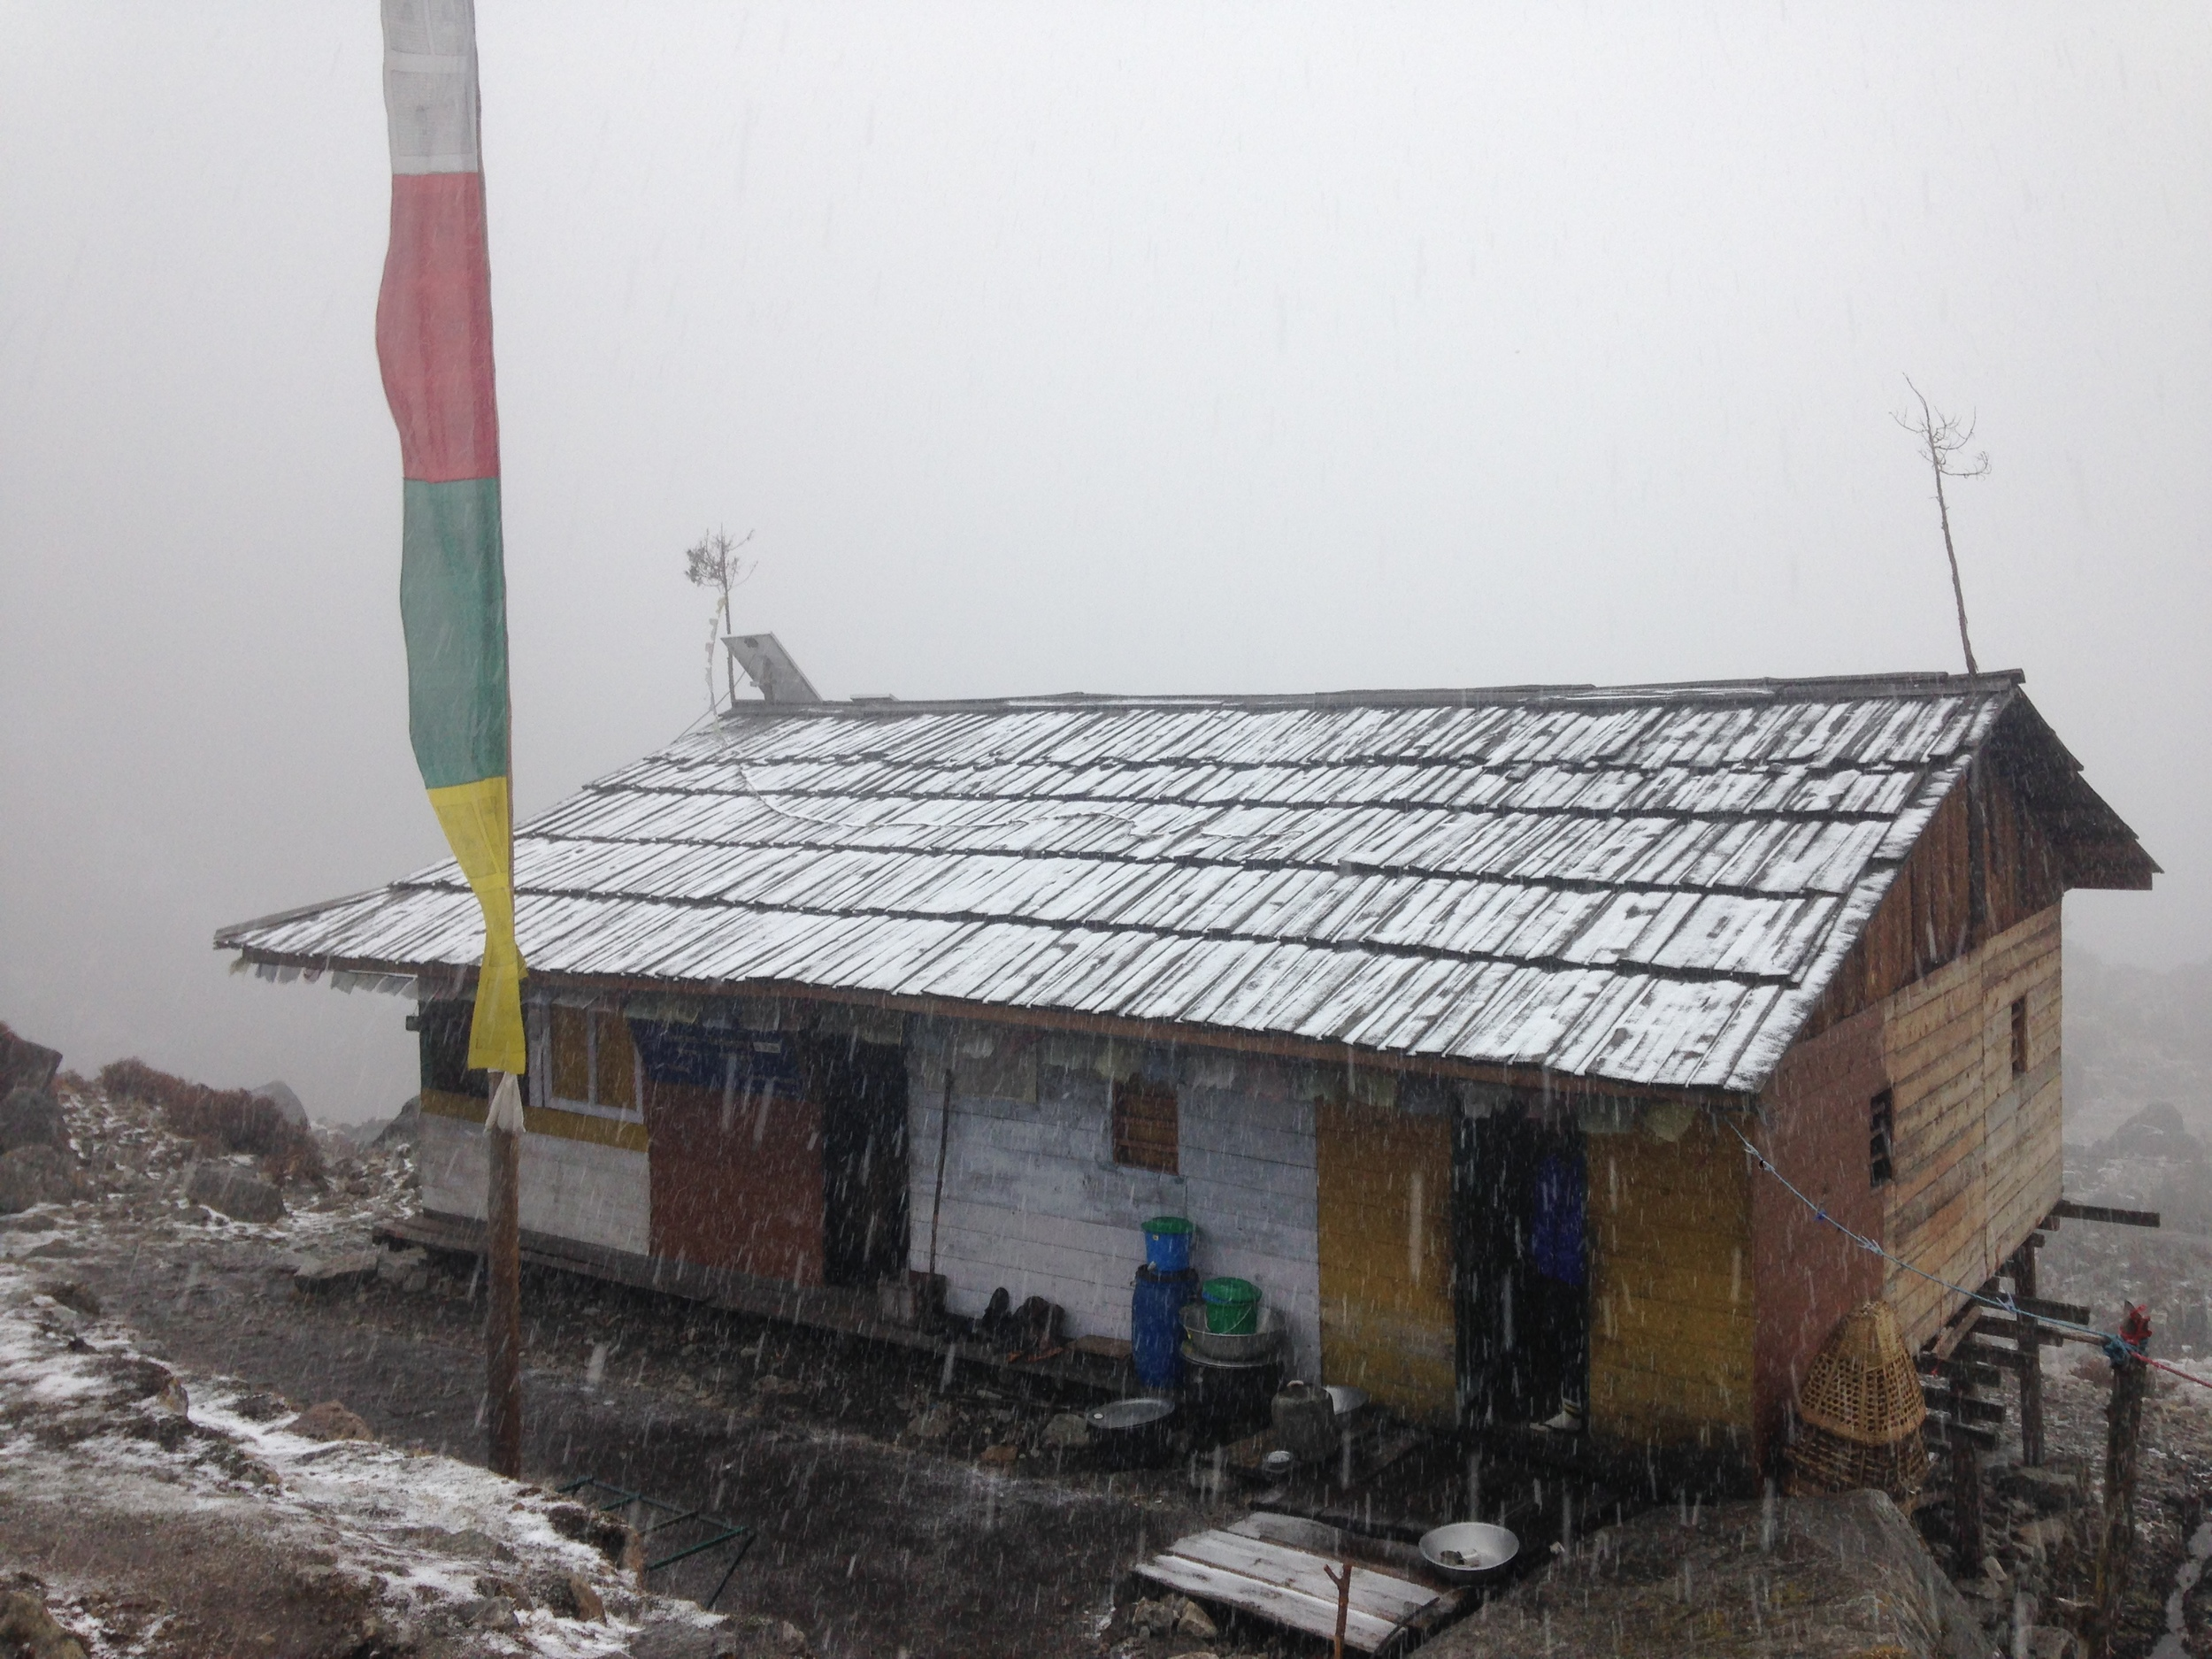 The teahouse at Cheram getting snowed on.